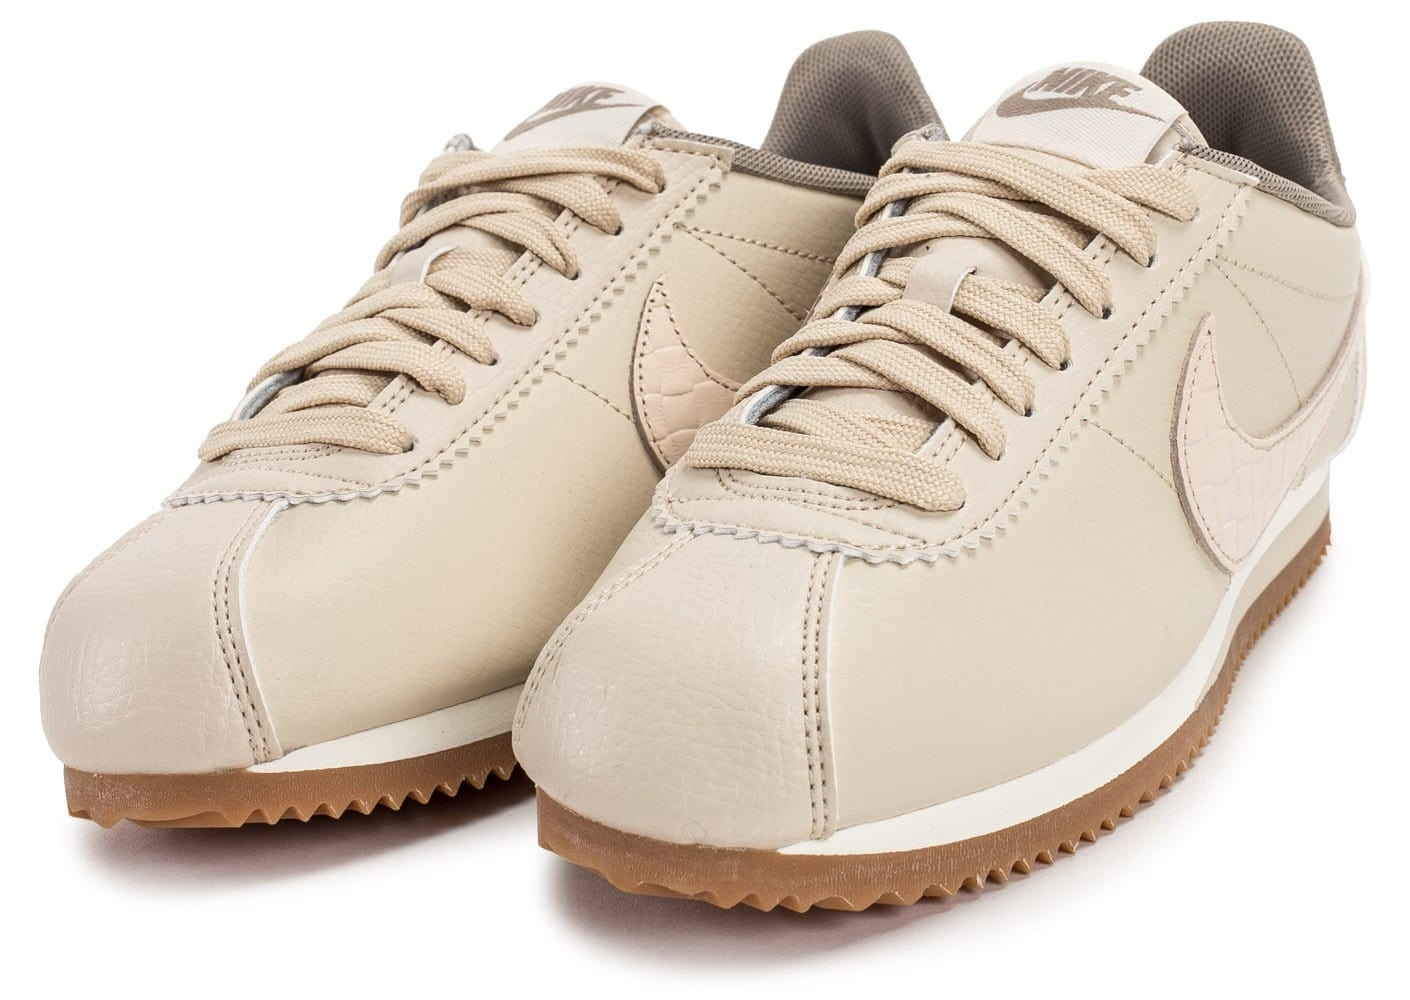 Leather Nike Cortez Chaussures Beige Classic Femme Baskets Lux WreCBxdo